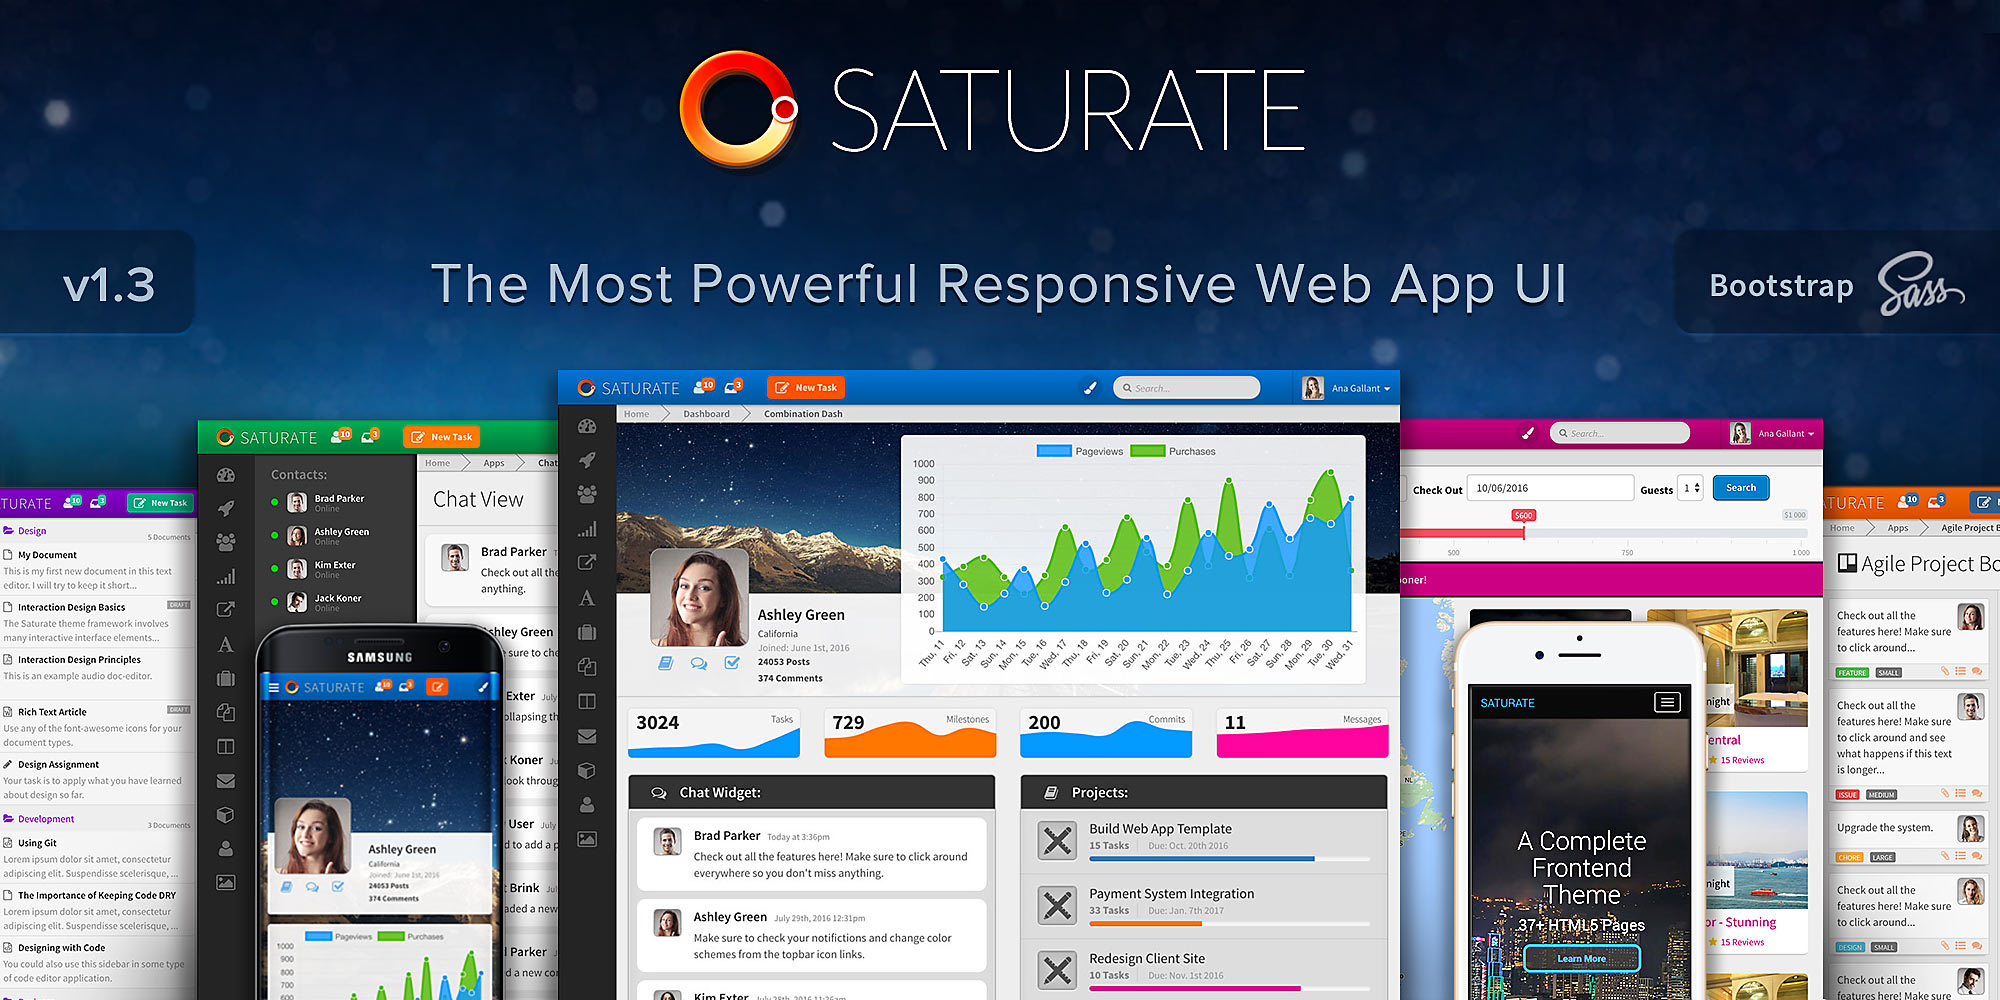 Saturate ui theme preview enlarged